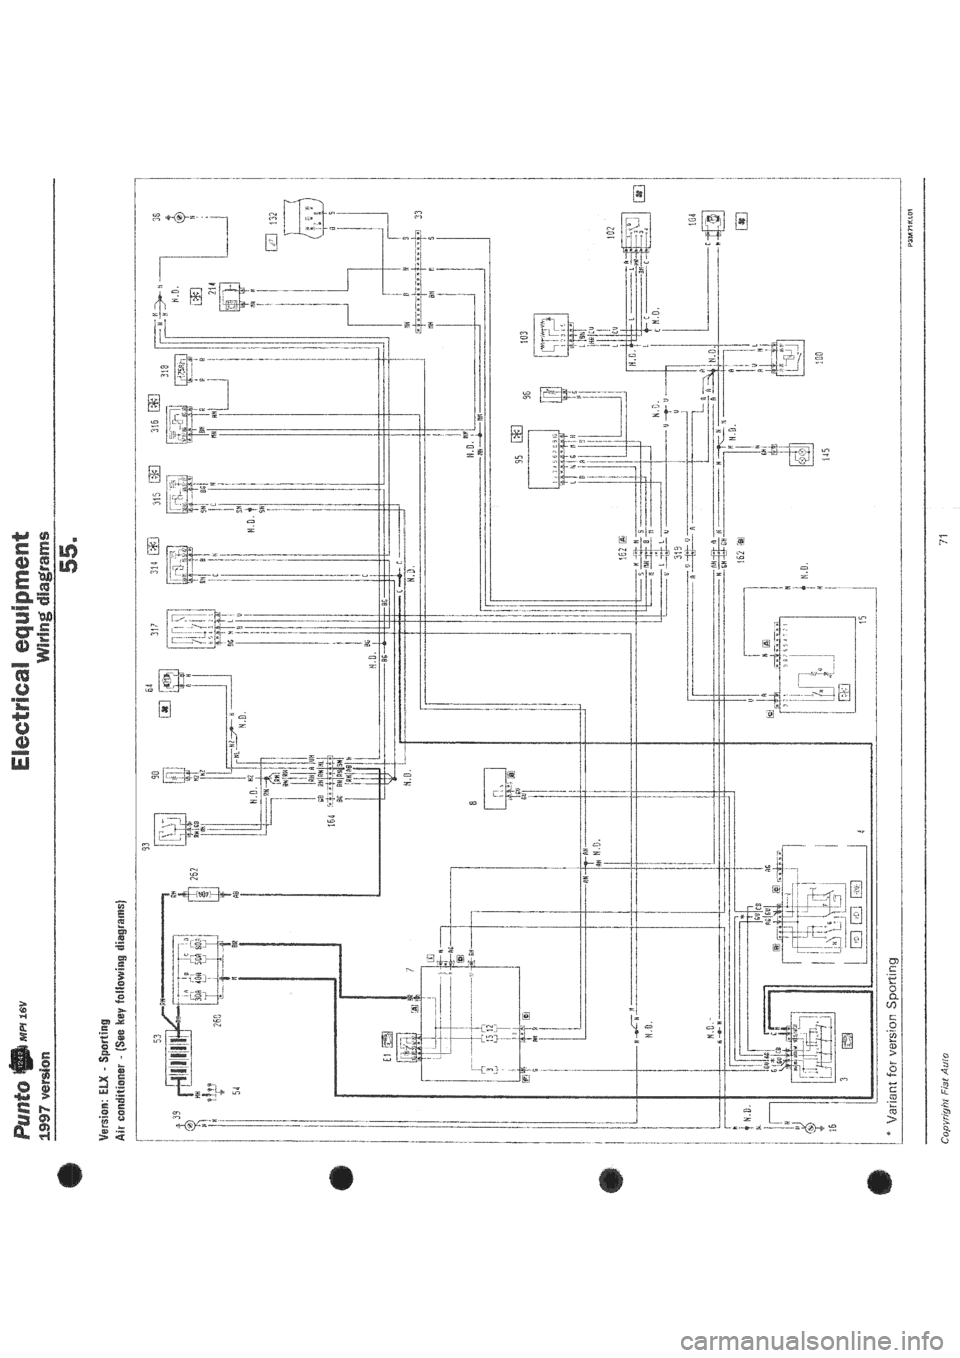 w960_4692-9 Xdvd Wiring Diagram on